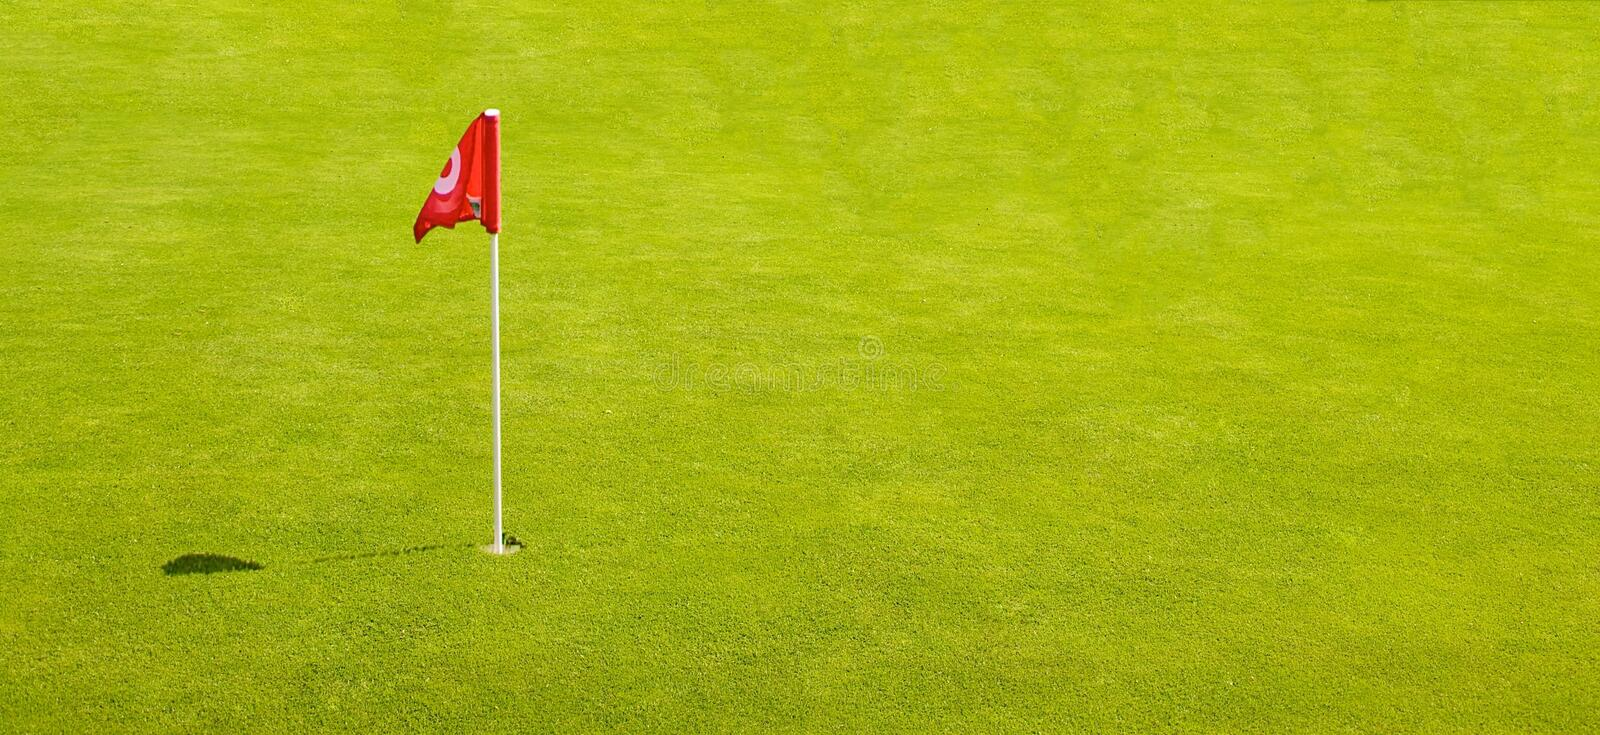 Download Golf Flag stock photo. Image of simple, target, goal - 22365360